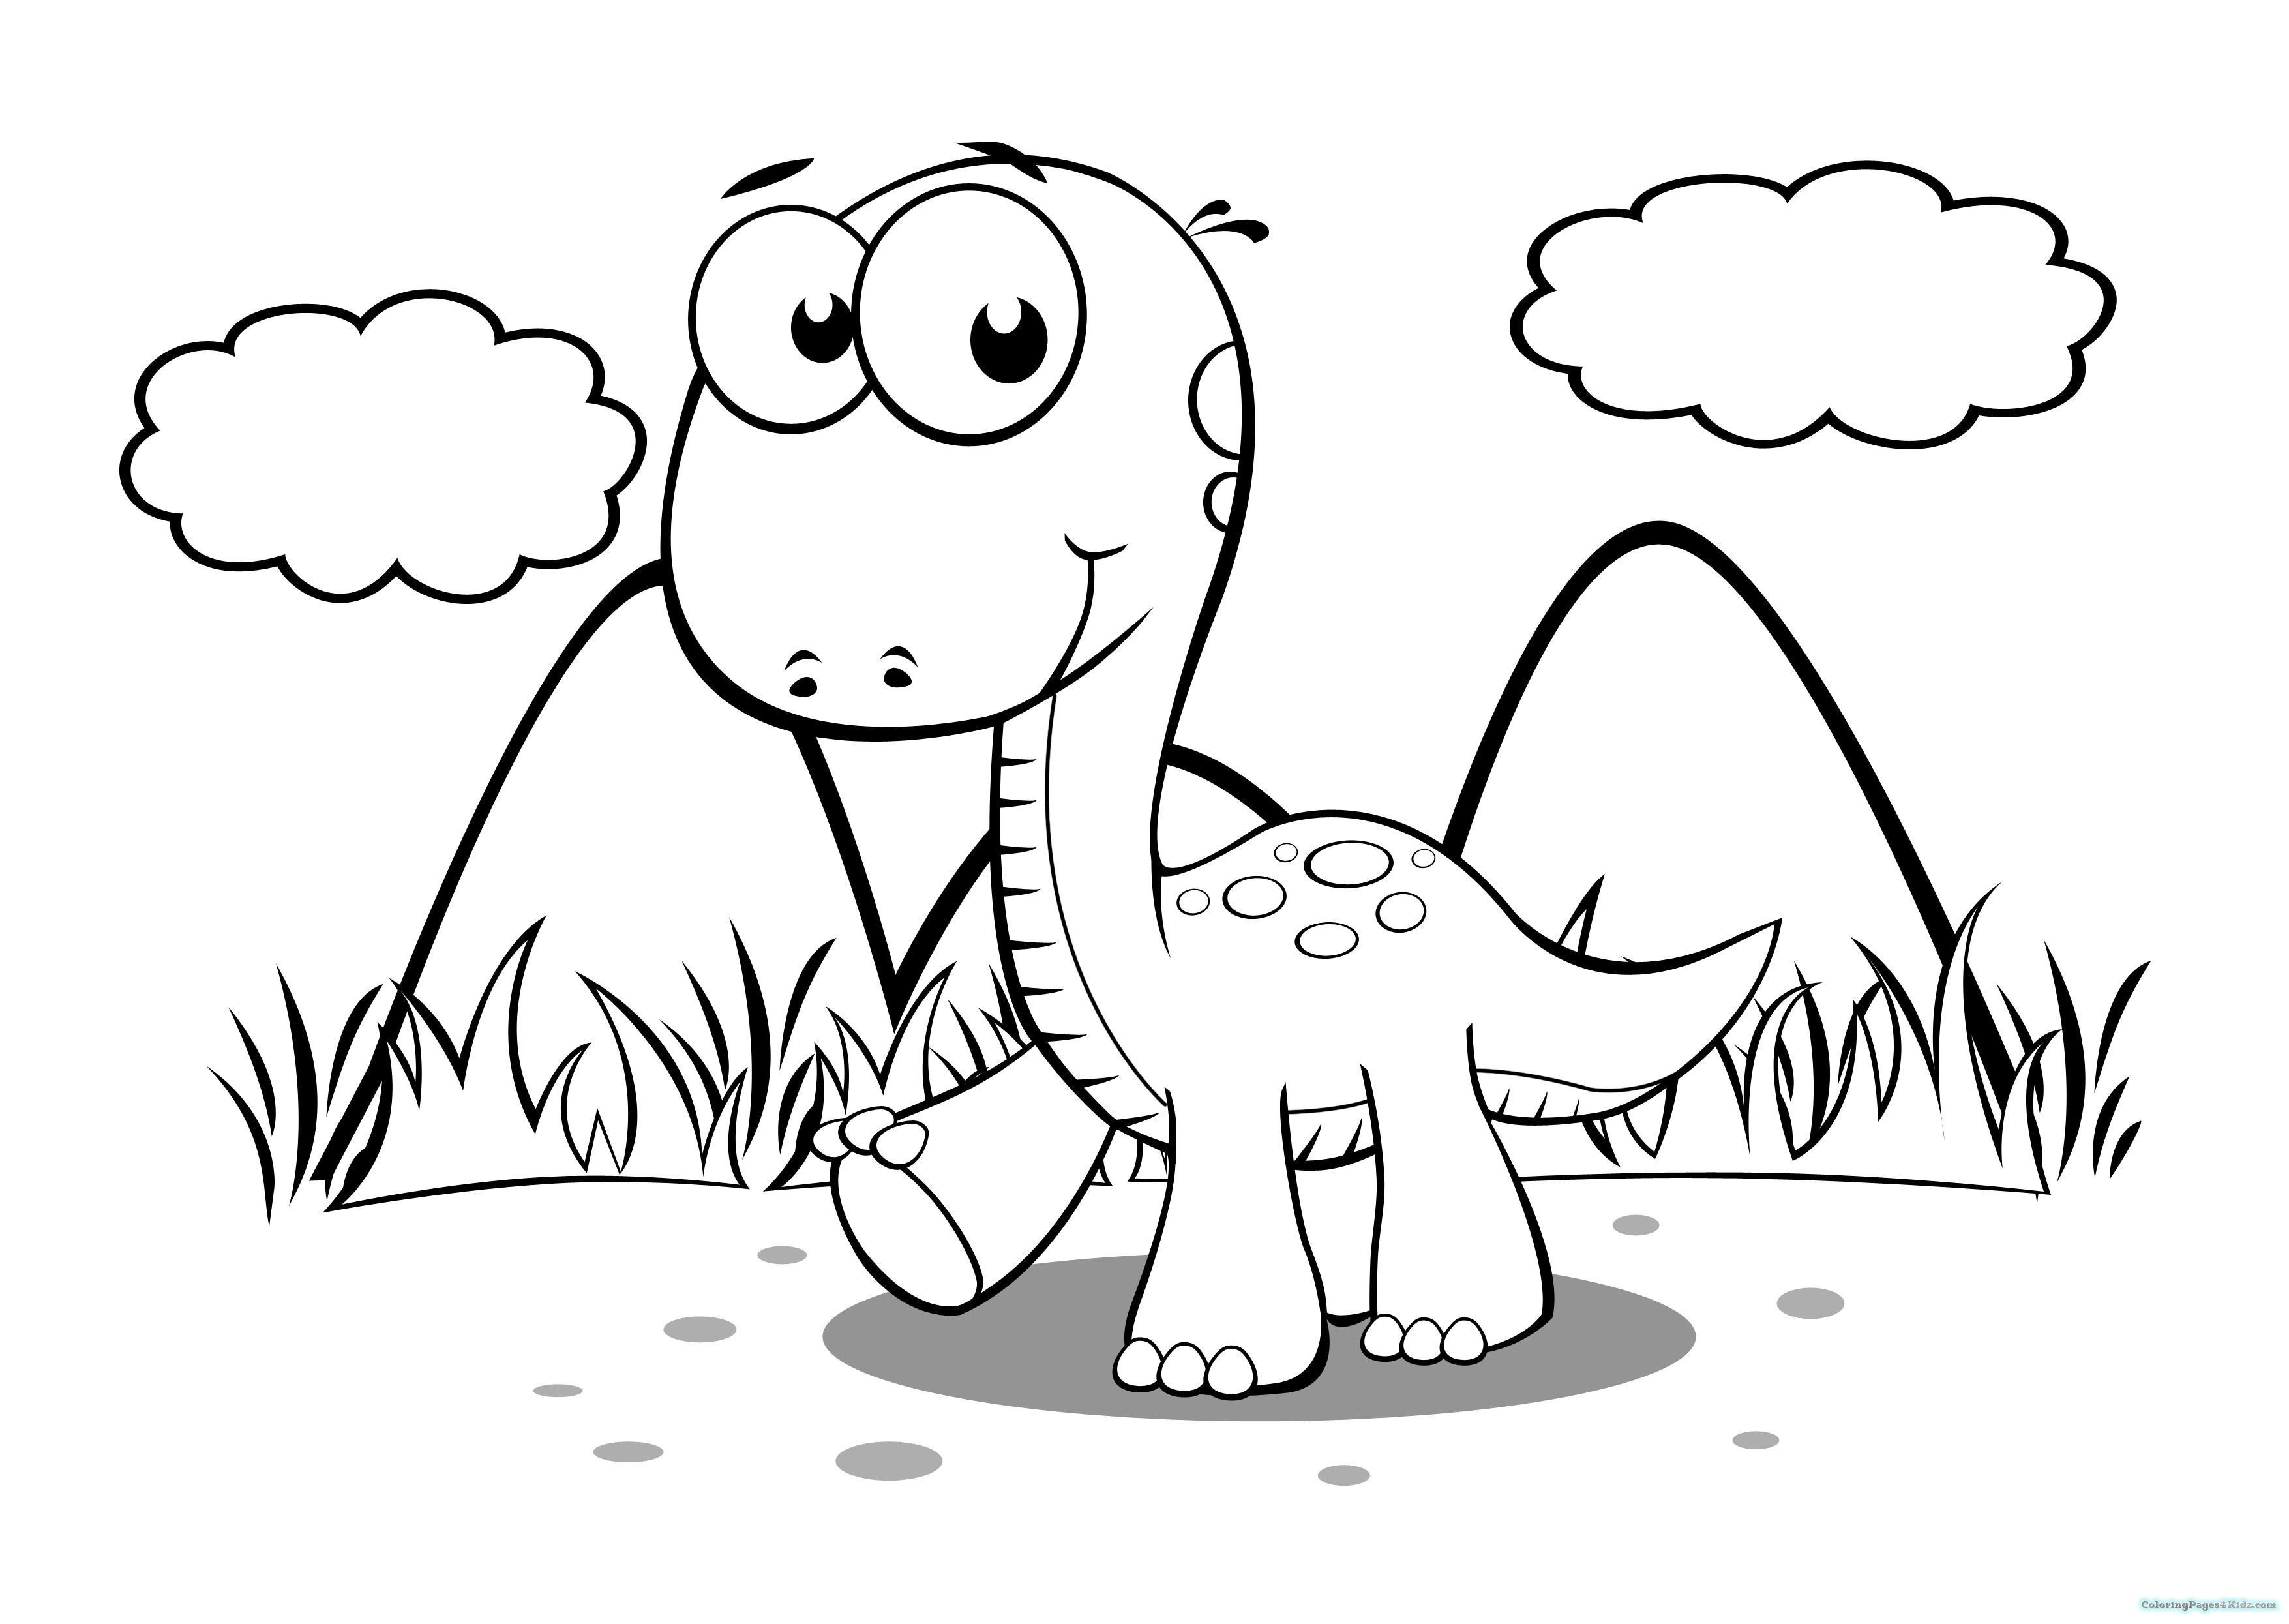 Free Dinosaur Train Coloring Pages Easy Printable Realistic Cute - Free Printable Dinosaur Coloring Pages